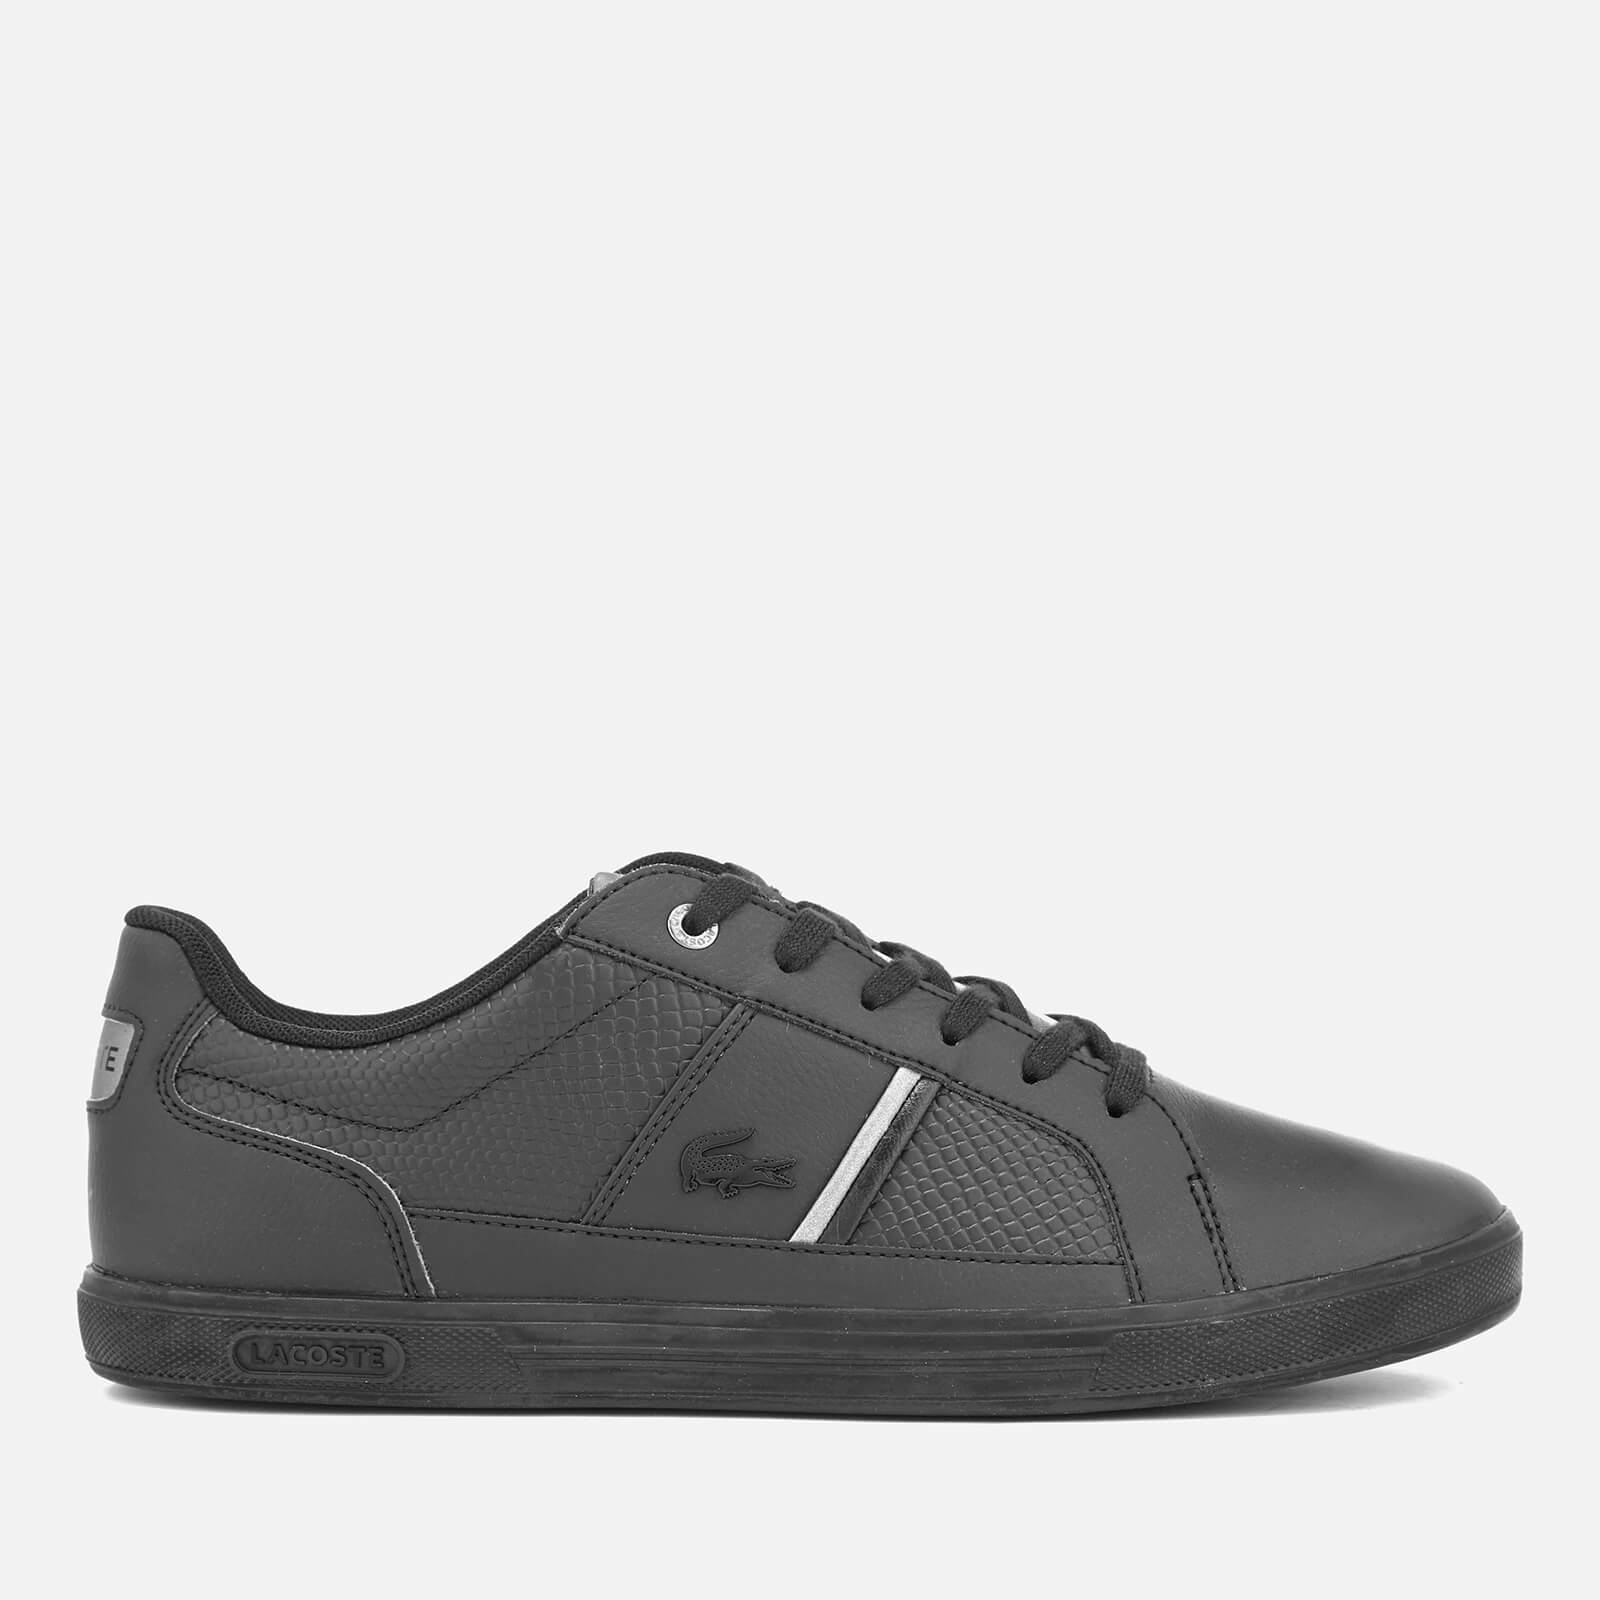 ce2c0b909 Lacoste Men s Europa 417 1 Trainers - Black - Free UK Delivery over £50